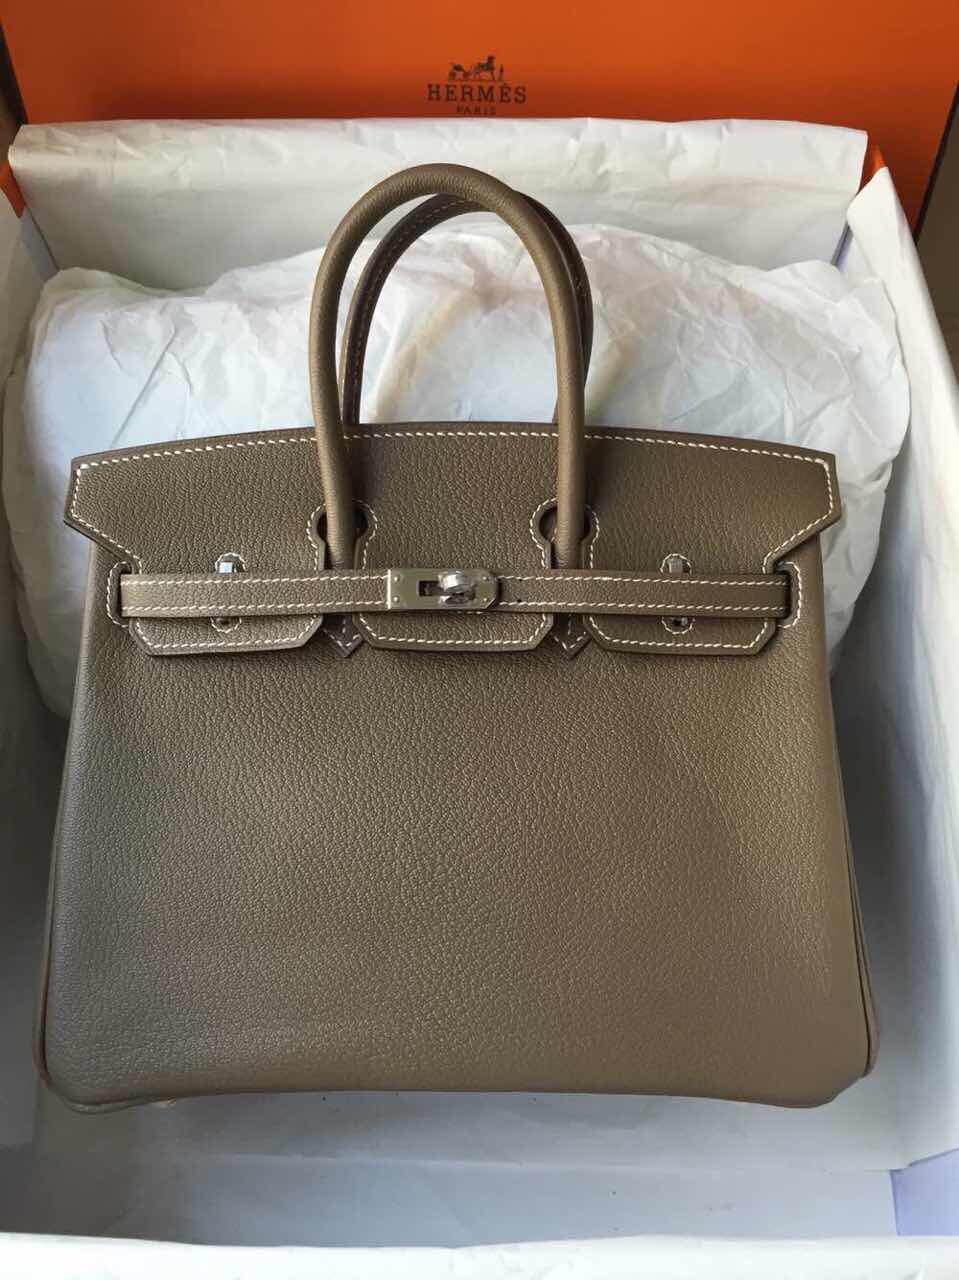 Wholesale Etoupe Grey Chevre Leather Hermes Birkin Bag Women's Tote Bag 25cm